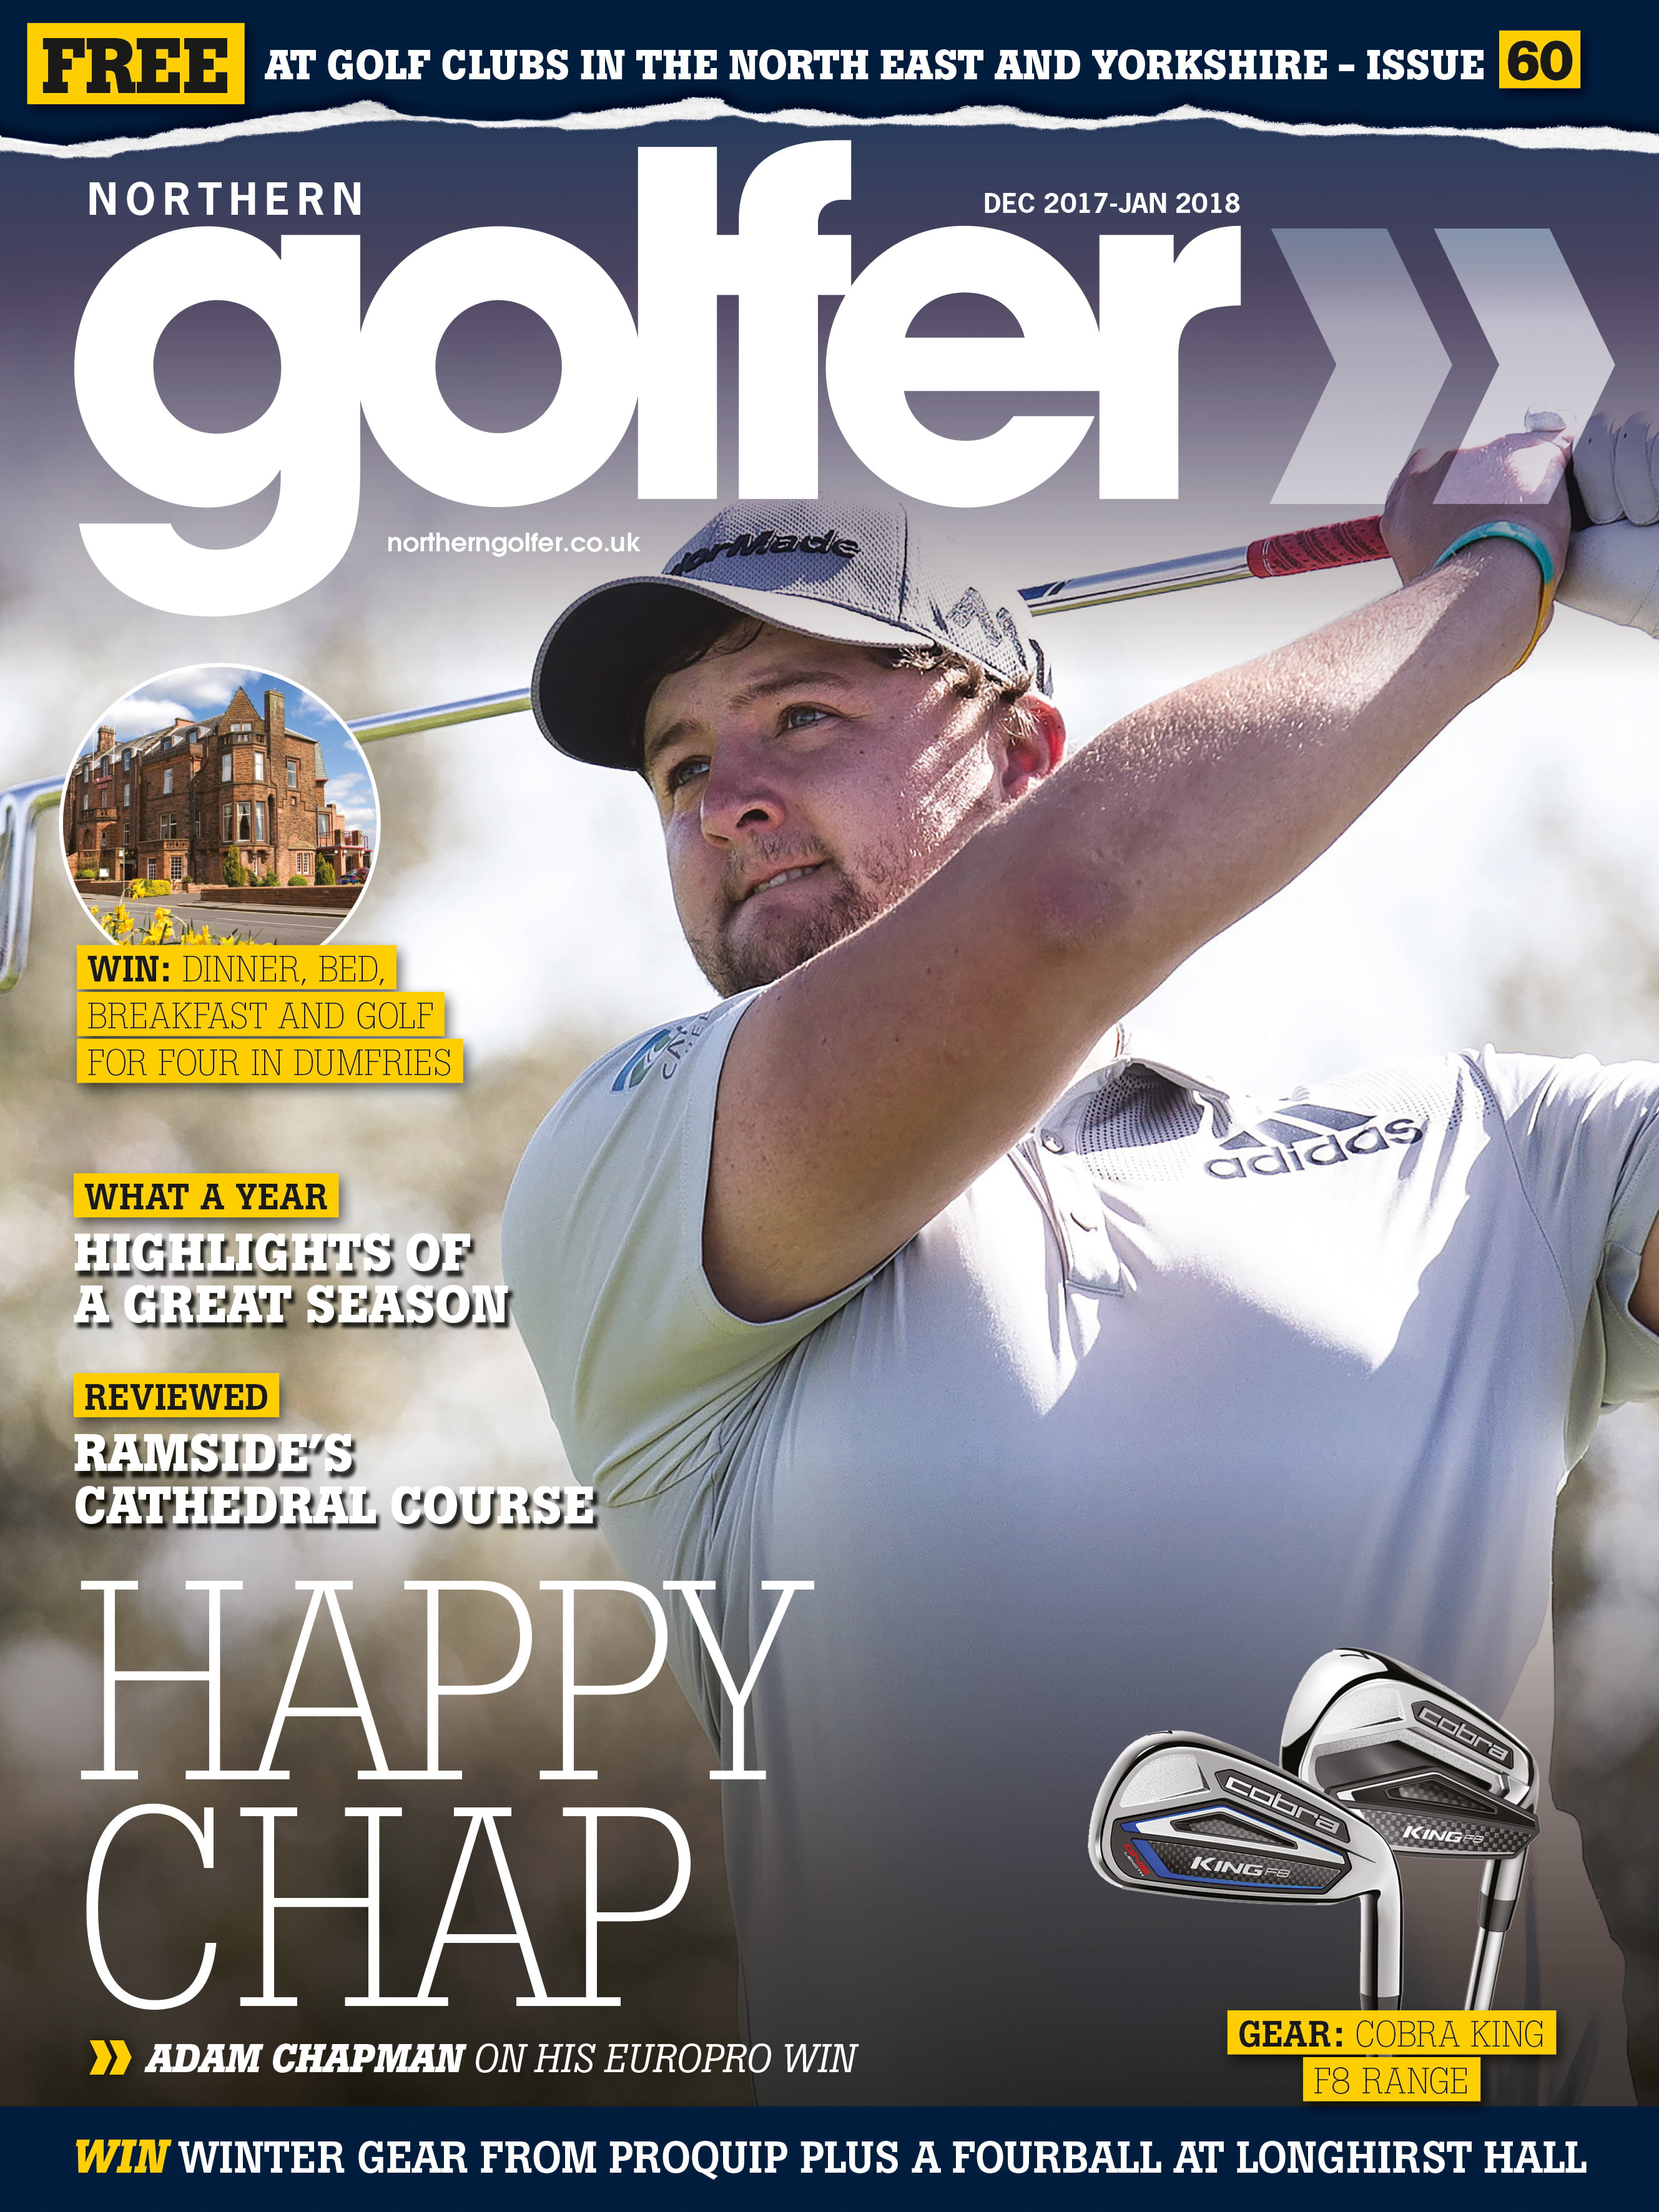 Golfer issue 60 - Dec 2017/Jan 2018